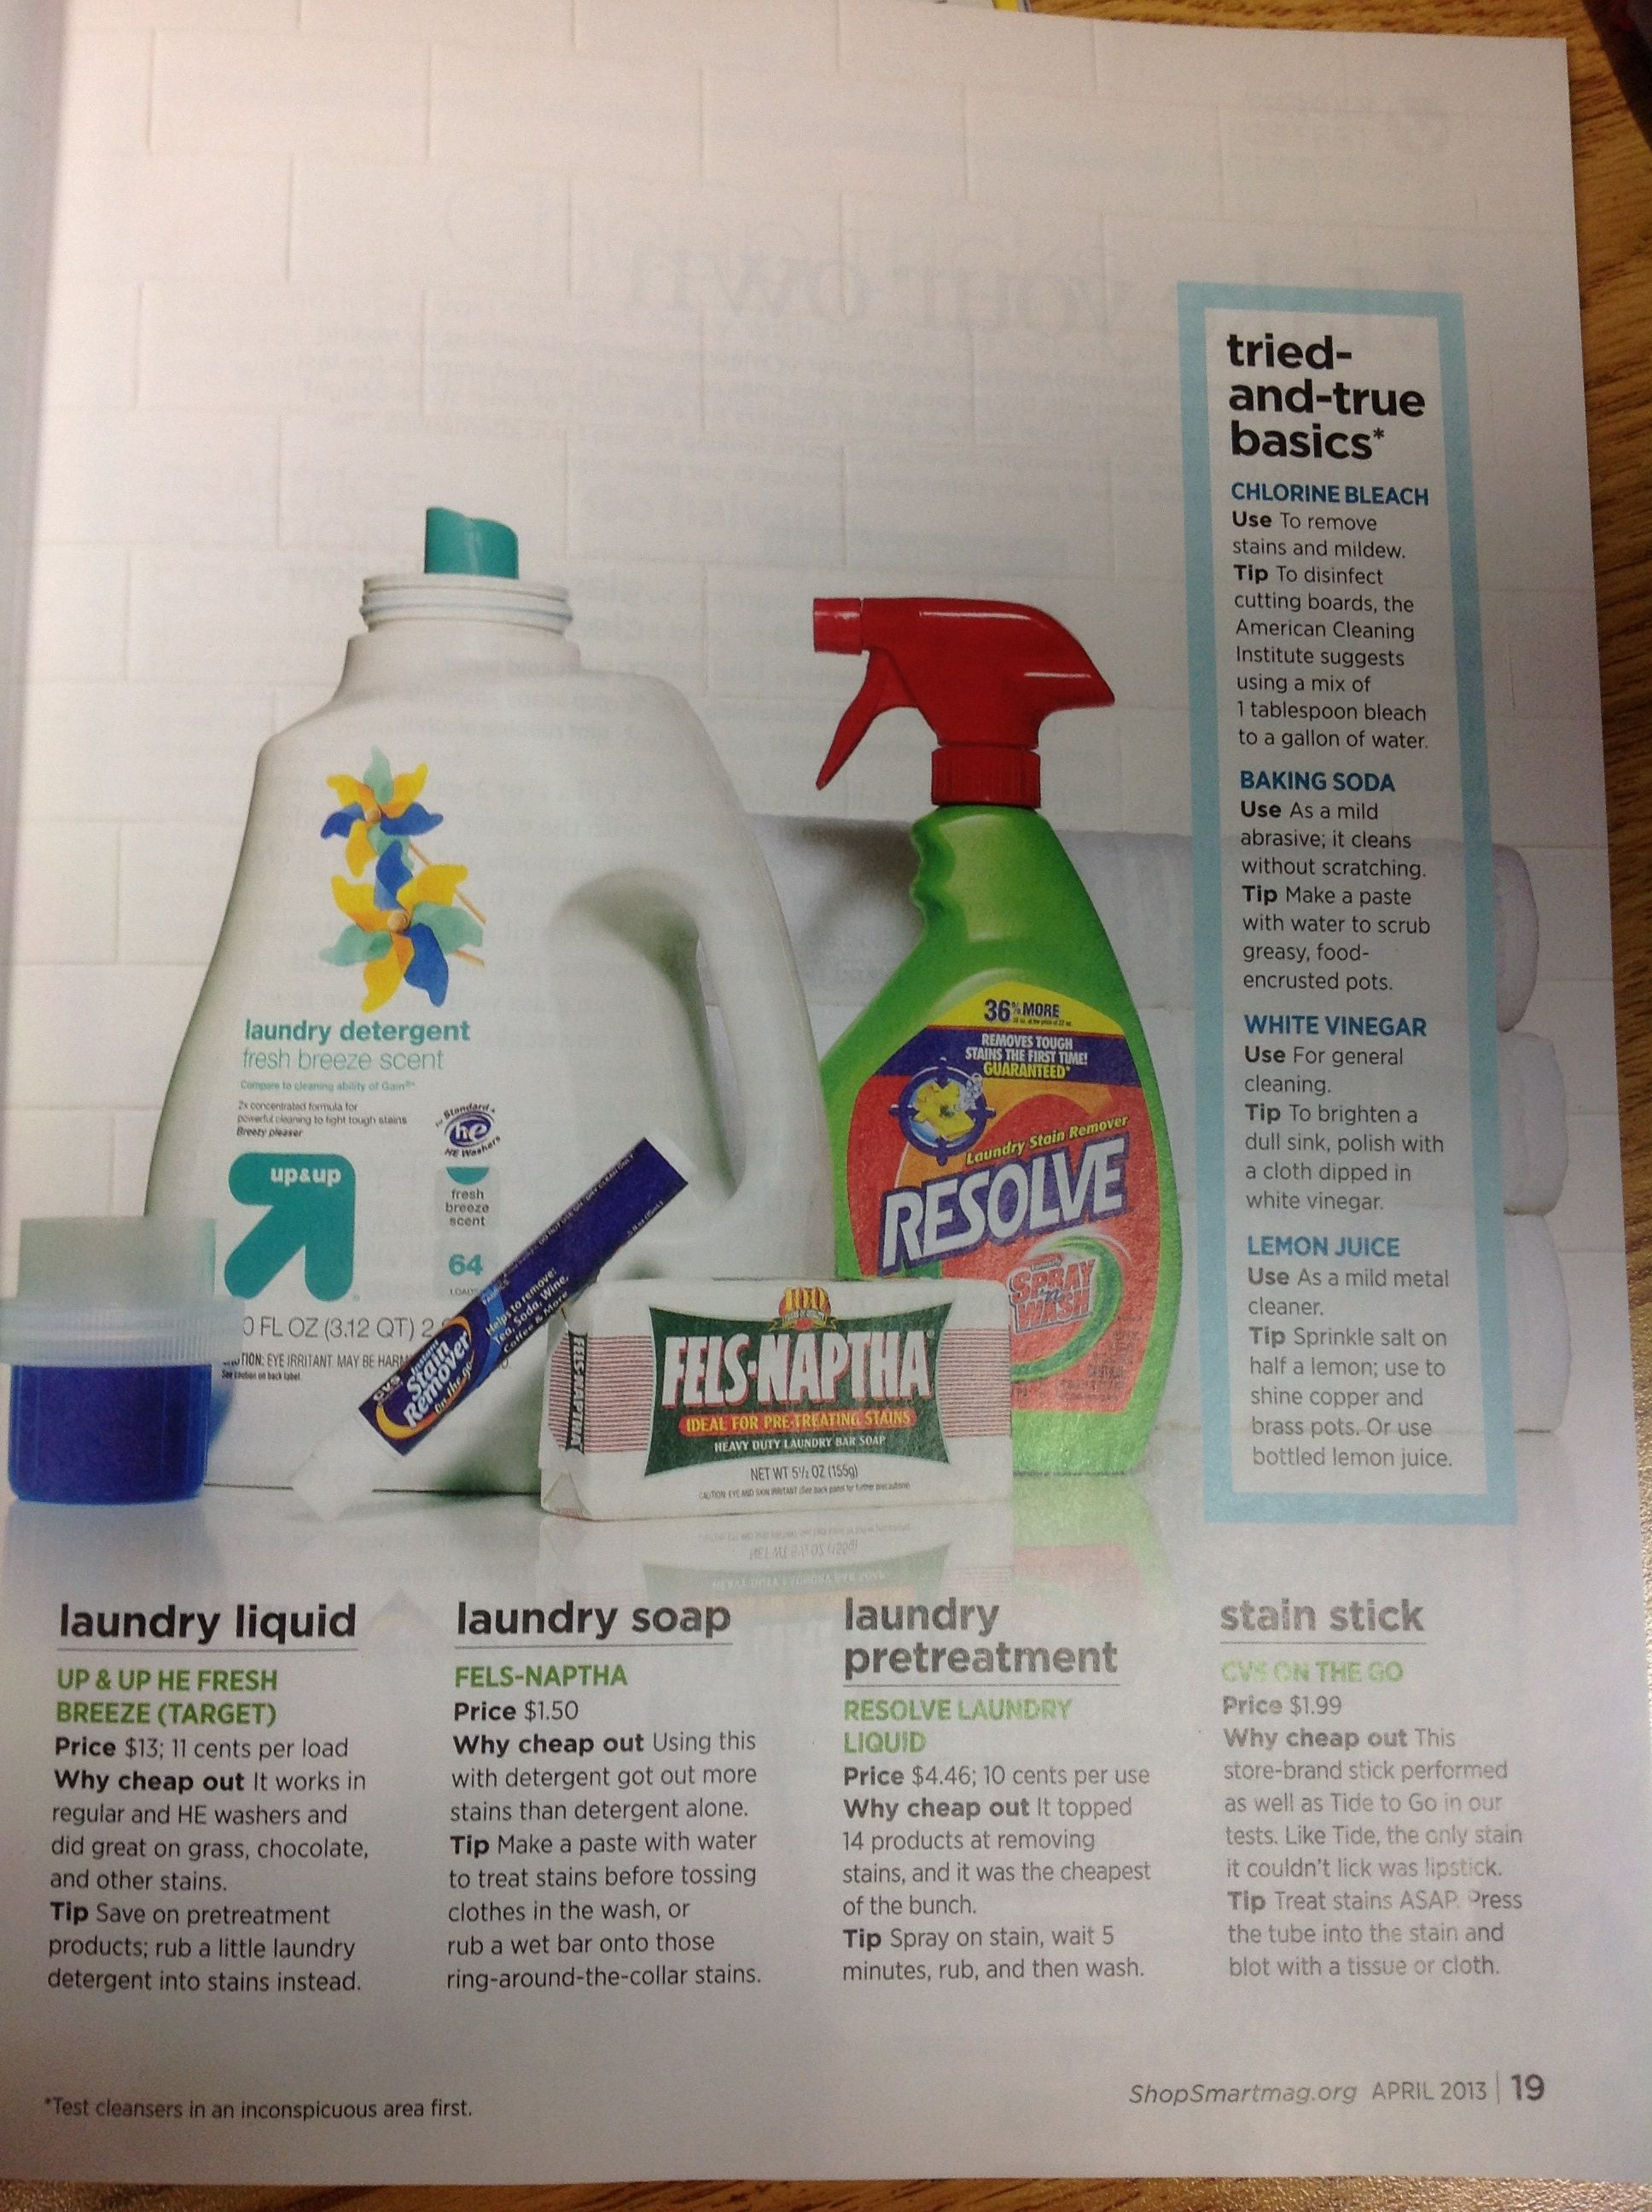 Upholstery Carpet Stain Remover Ingredients 1 Tbsp Dish Soap I